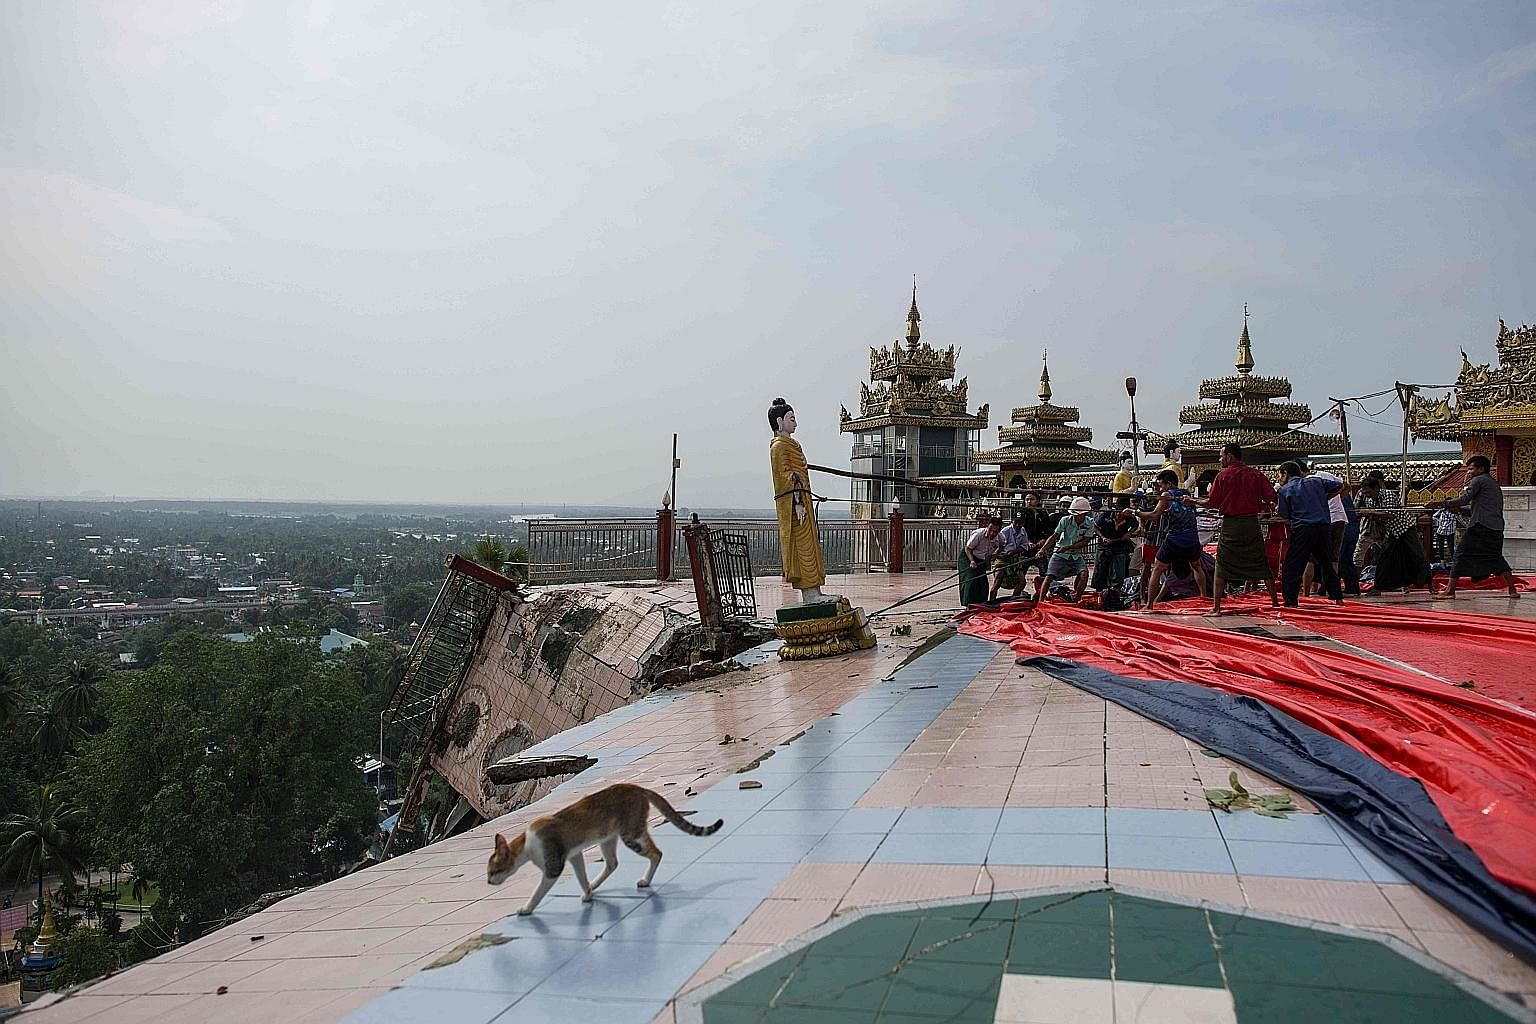 Workers trying to prevent a Buddha statue from slipping off a cliff after a landslide damaged the hilltop Kyeik Than Lan pagoda in Mawlamyine, in Myanmar's Mon state, yesterday.